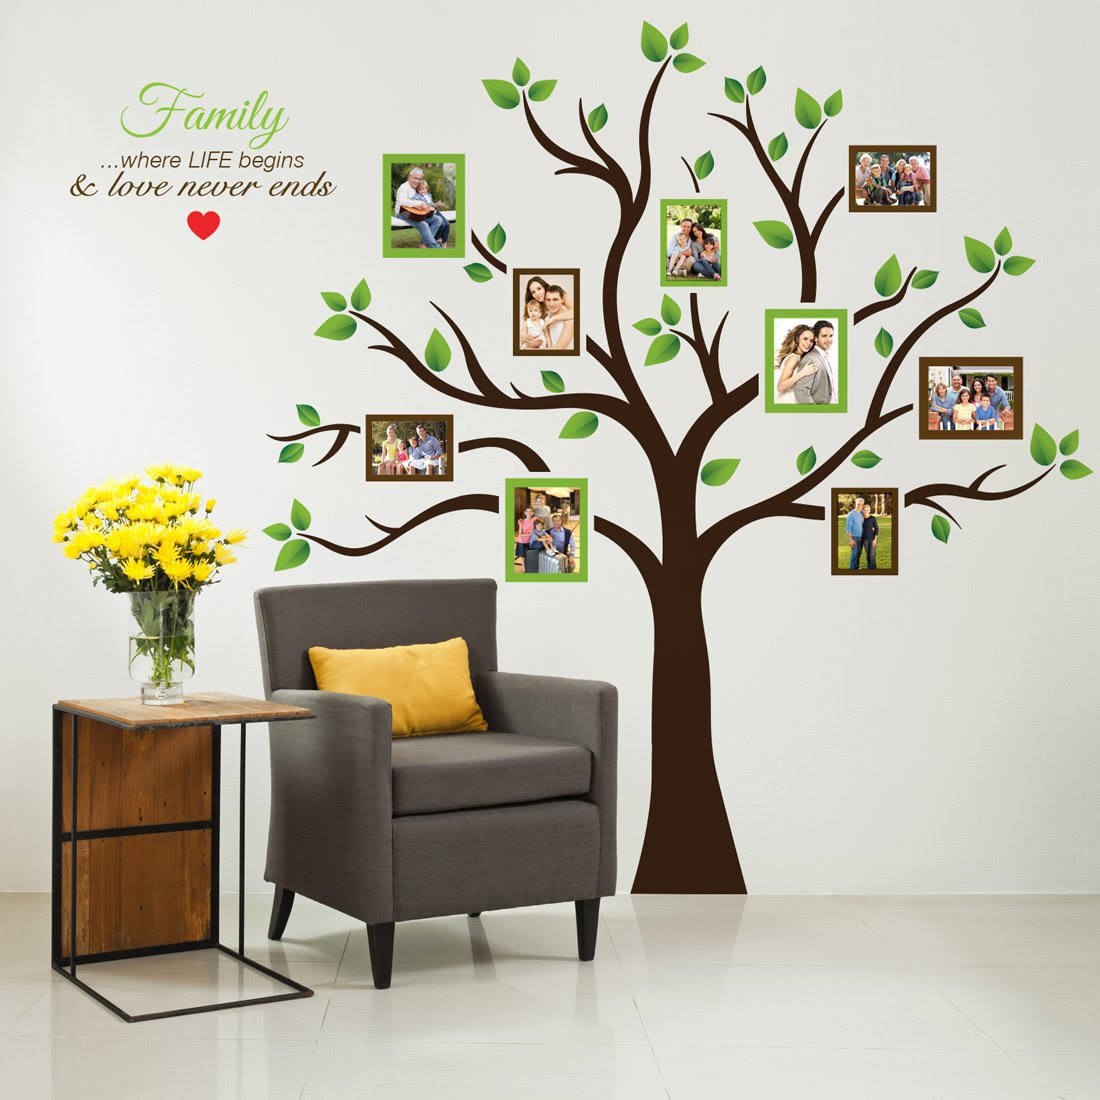 Timber Artbox Large Family Tree Photo Frames Wall Decal Amazon